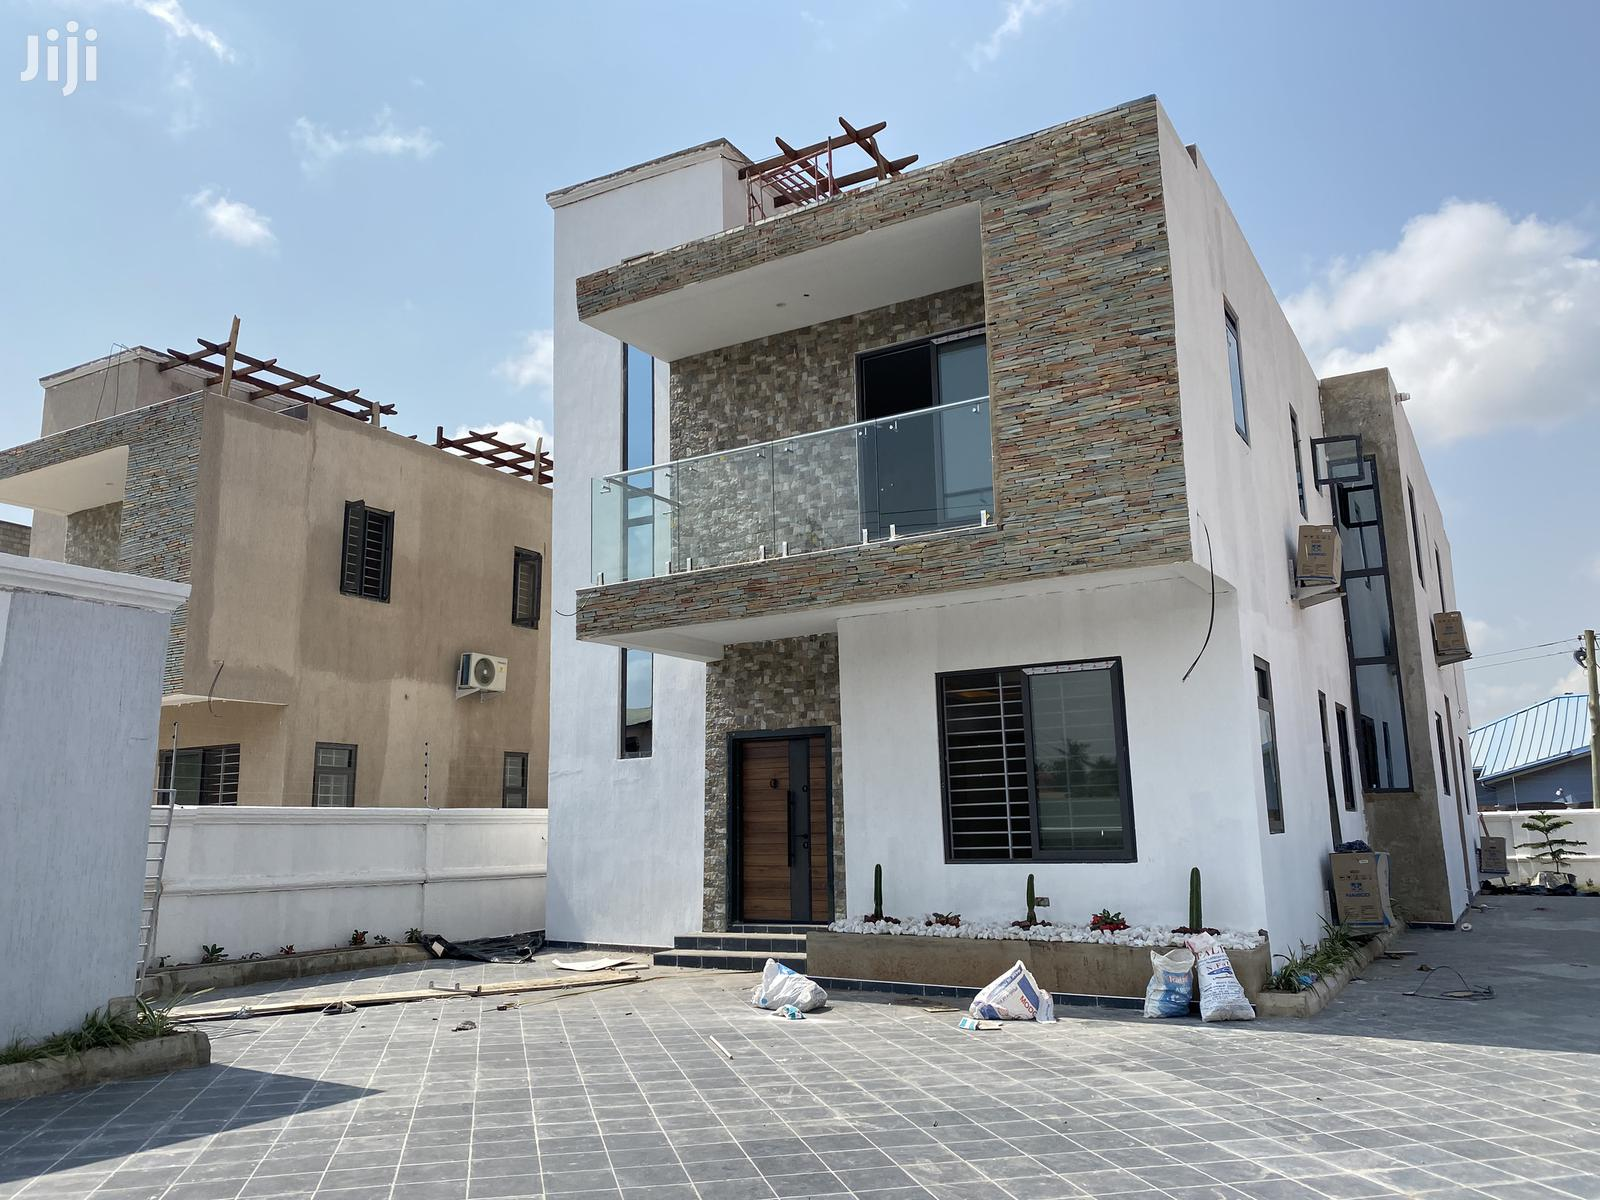 5 Bedrooms For Sale At North Legon